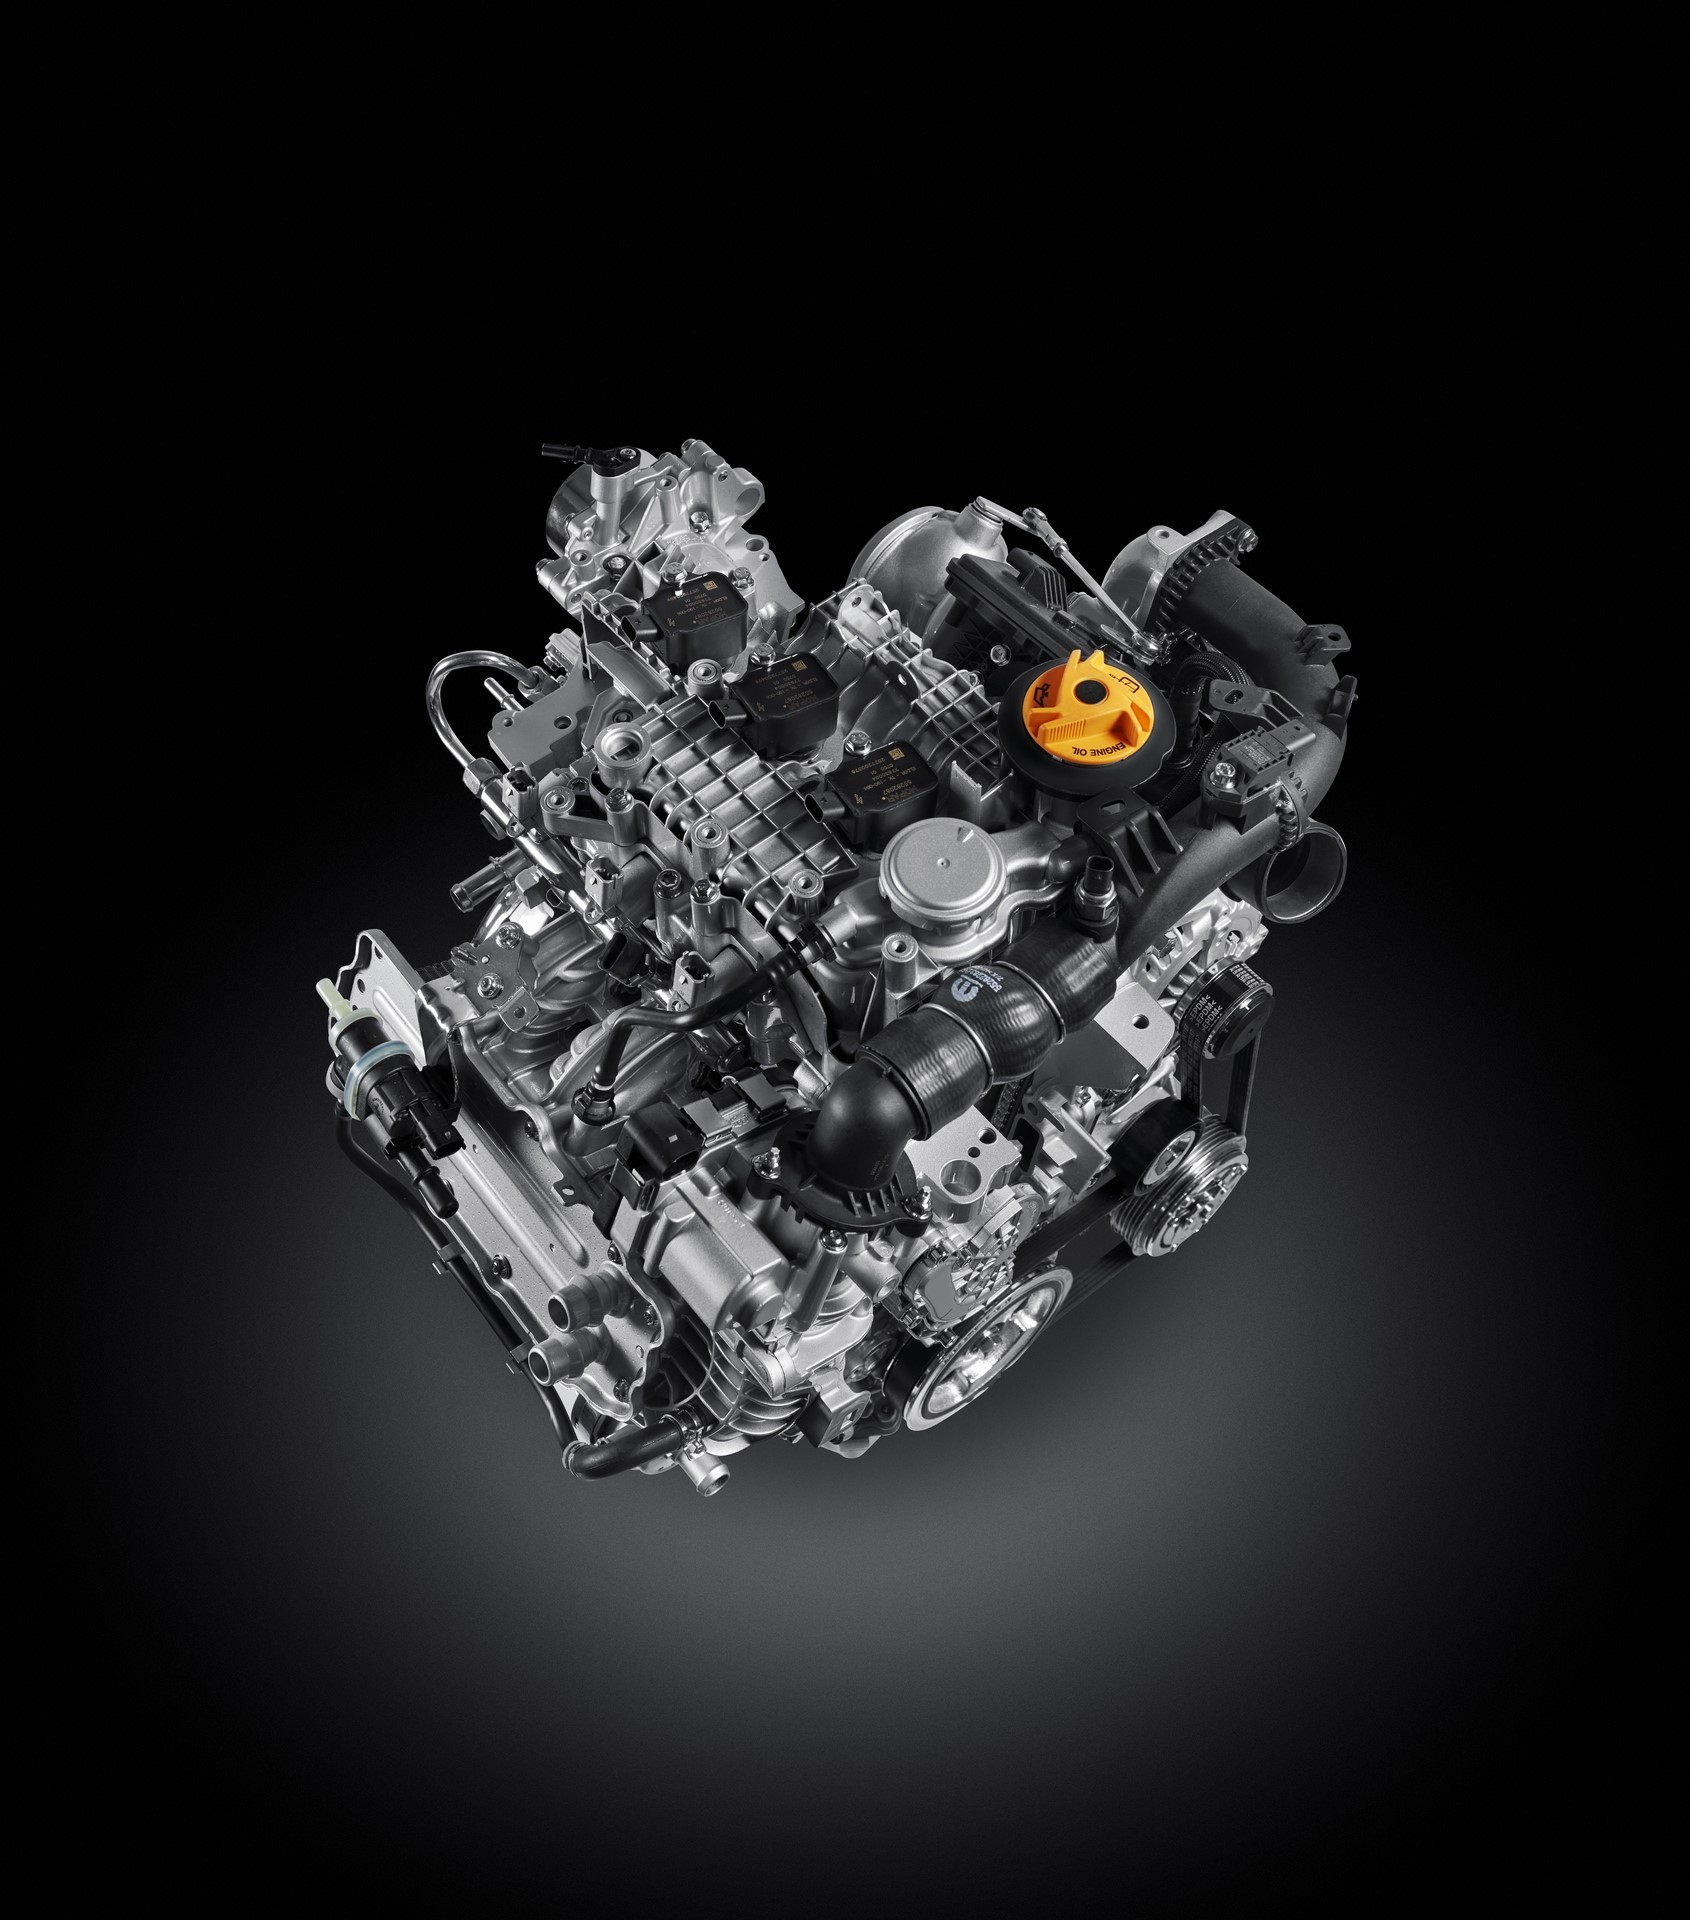 180828_Fiat_New-10L-Turbo-3-cylinder-120HP_20